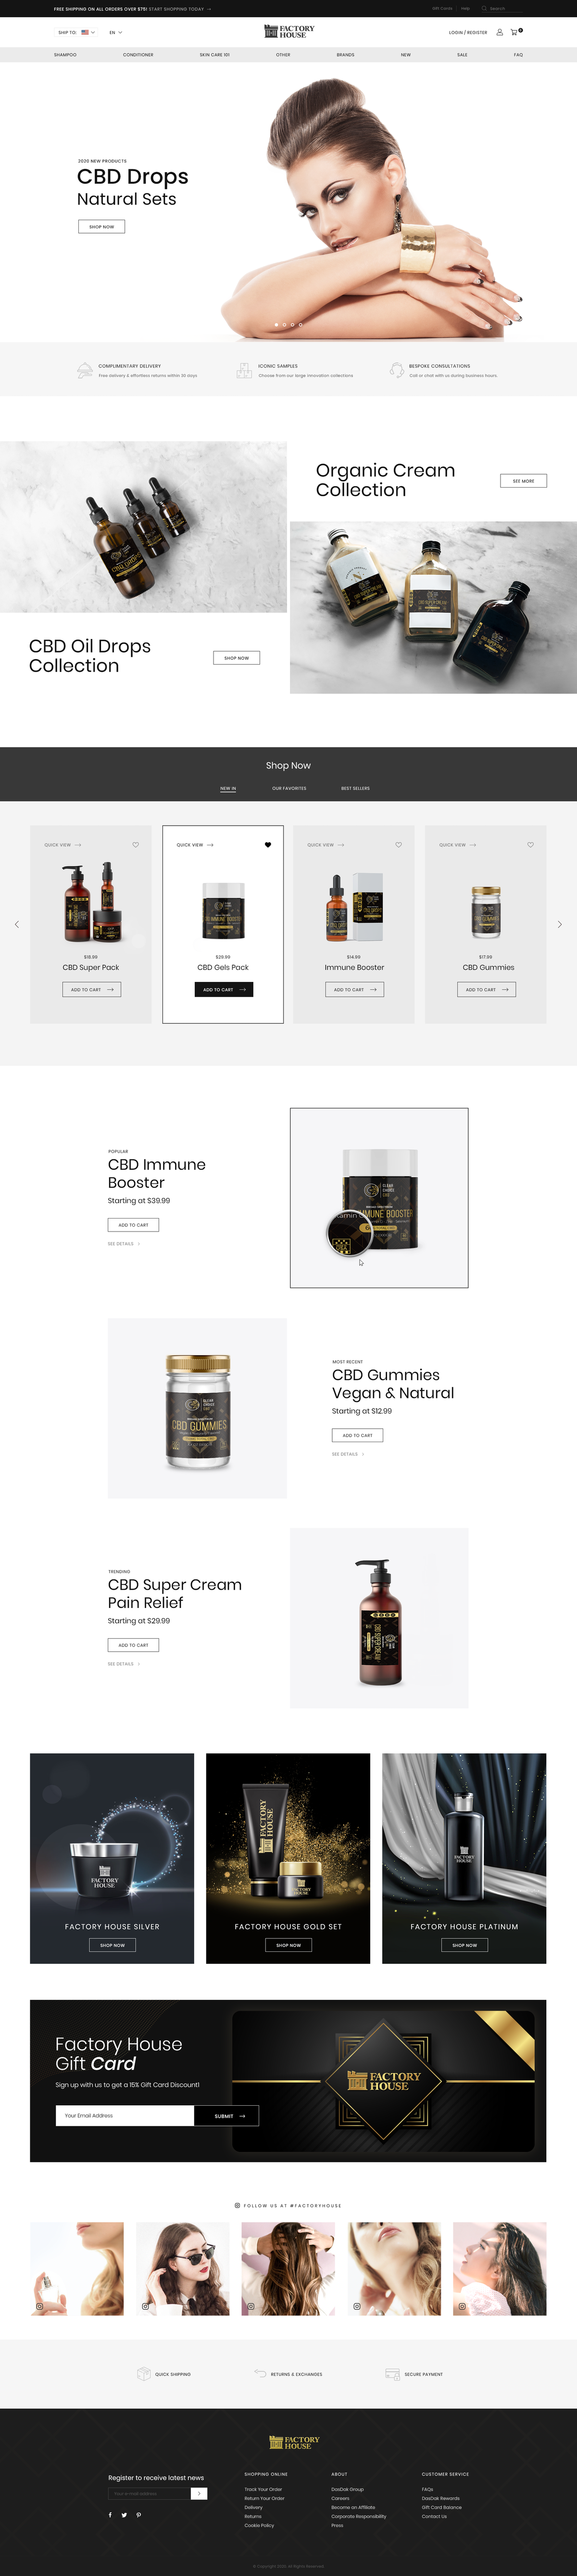 Design a sophisticated web-site for a new high-end Shampoo brand